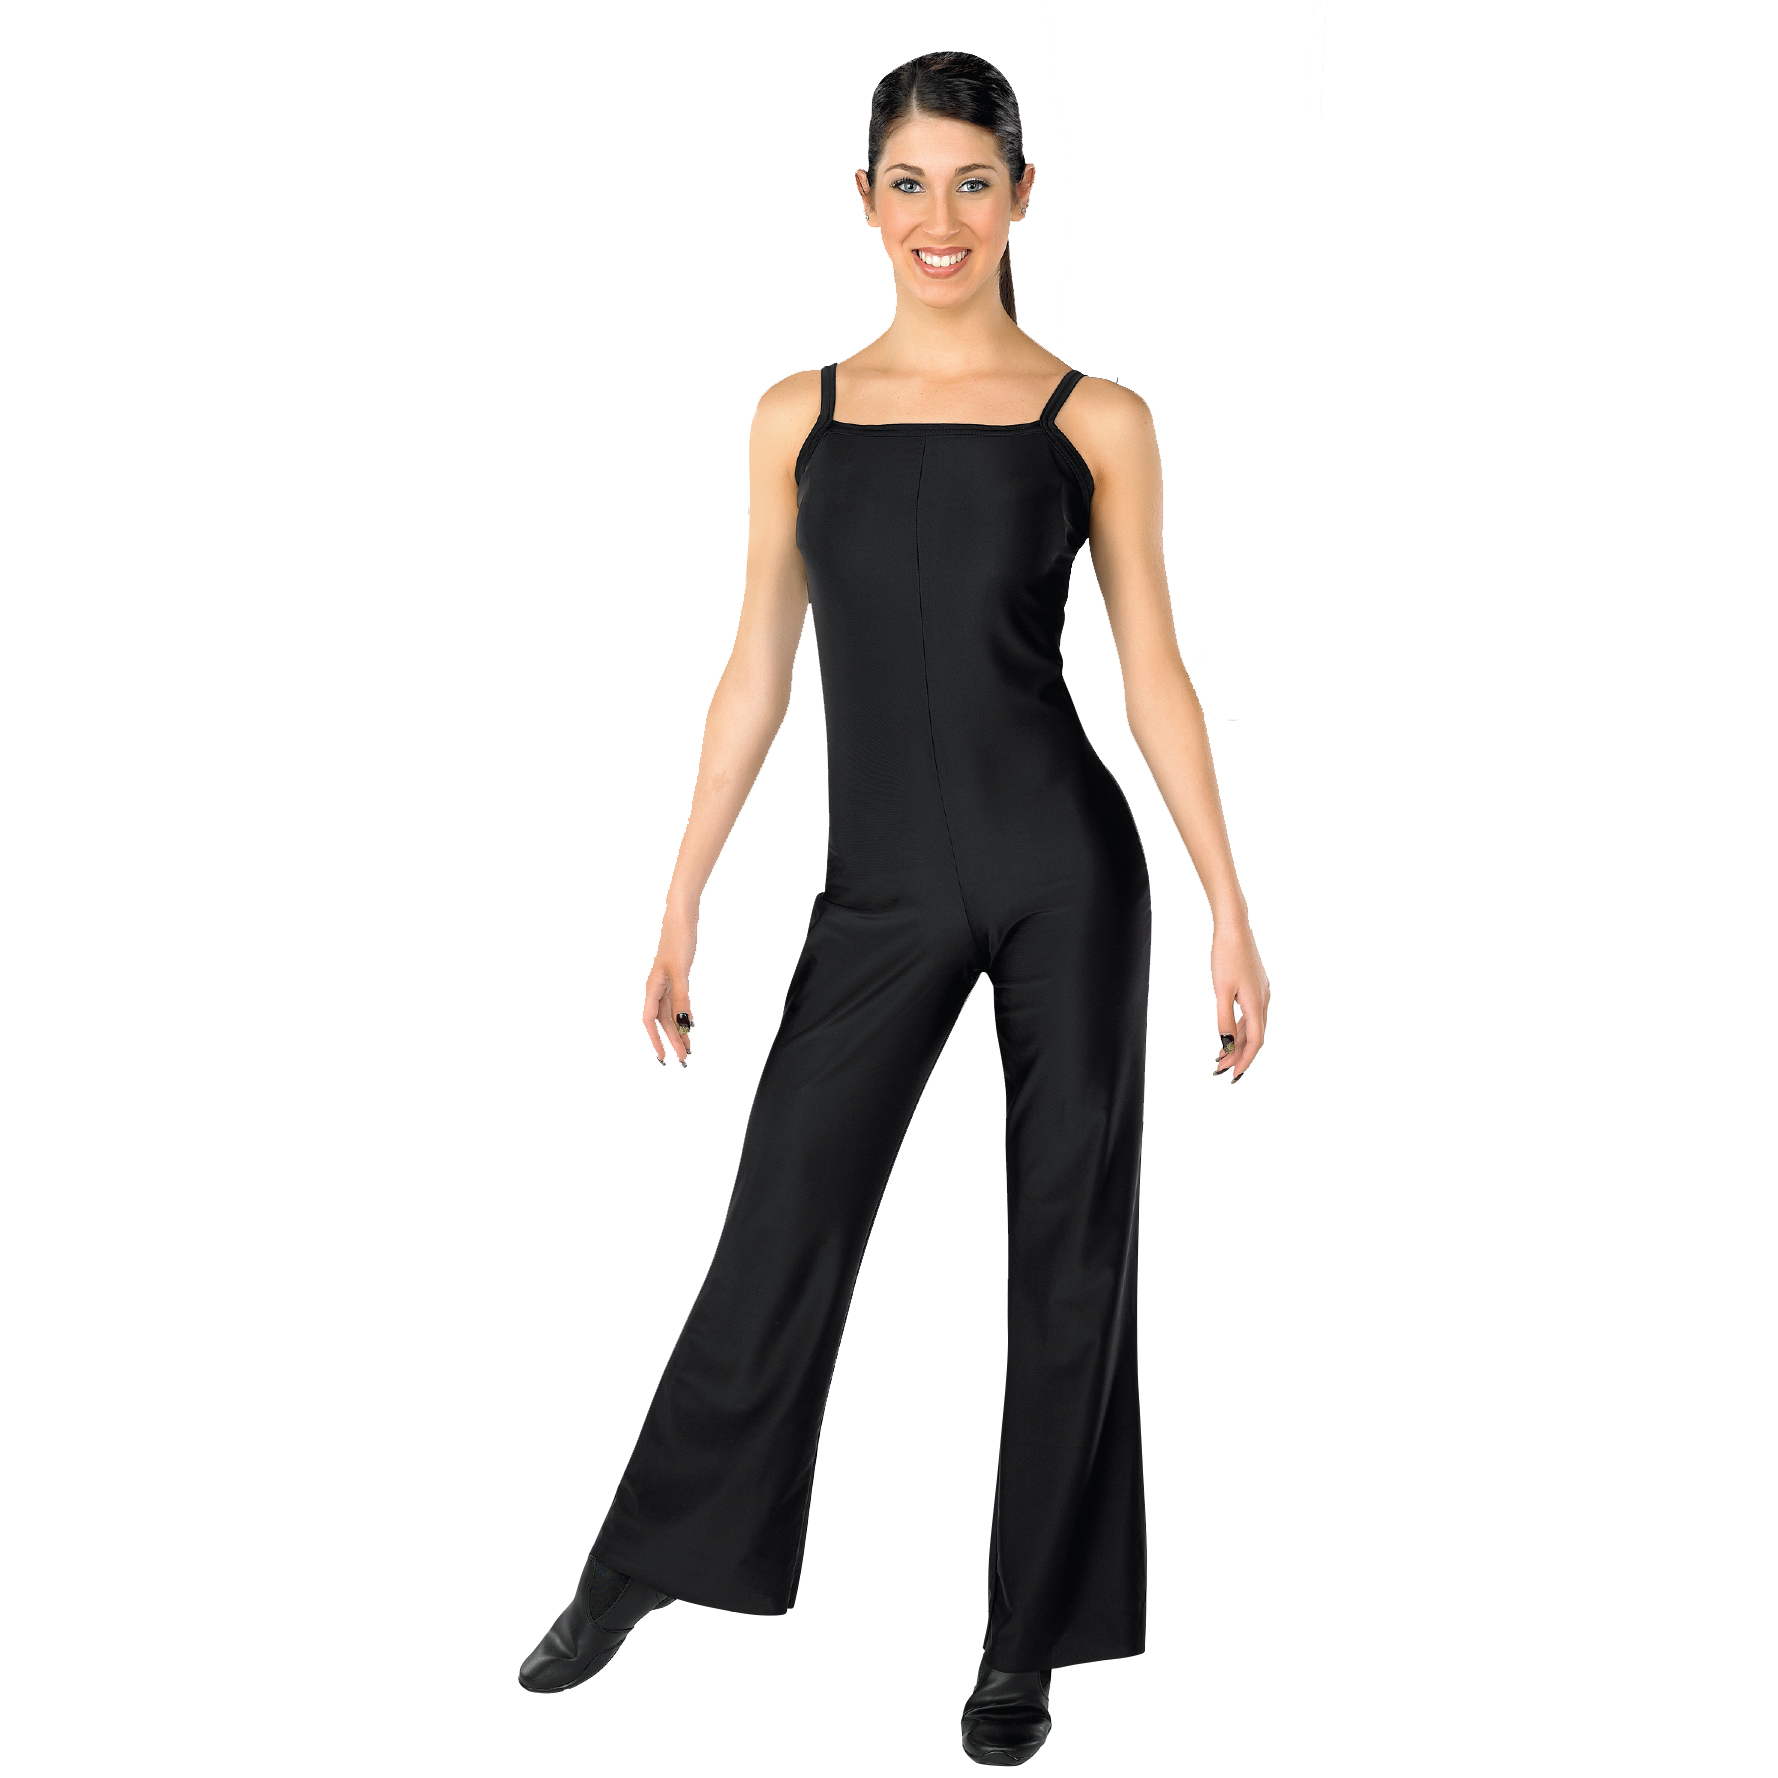 In-Stock Jazz-Leg Camisole Unitard